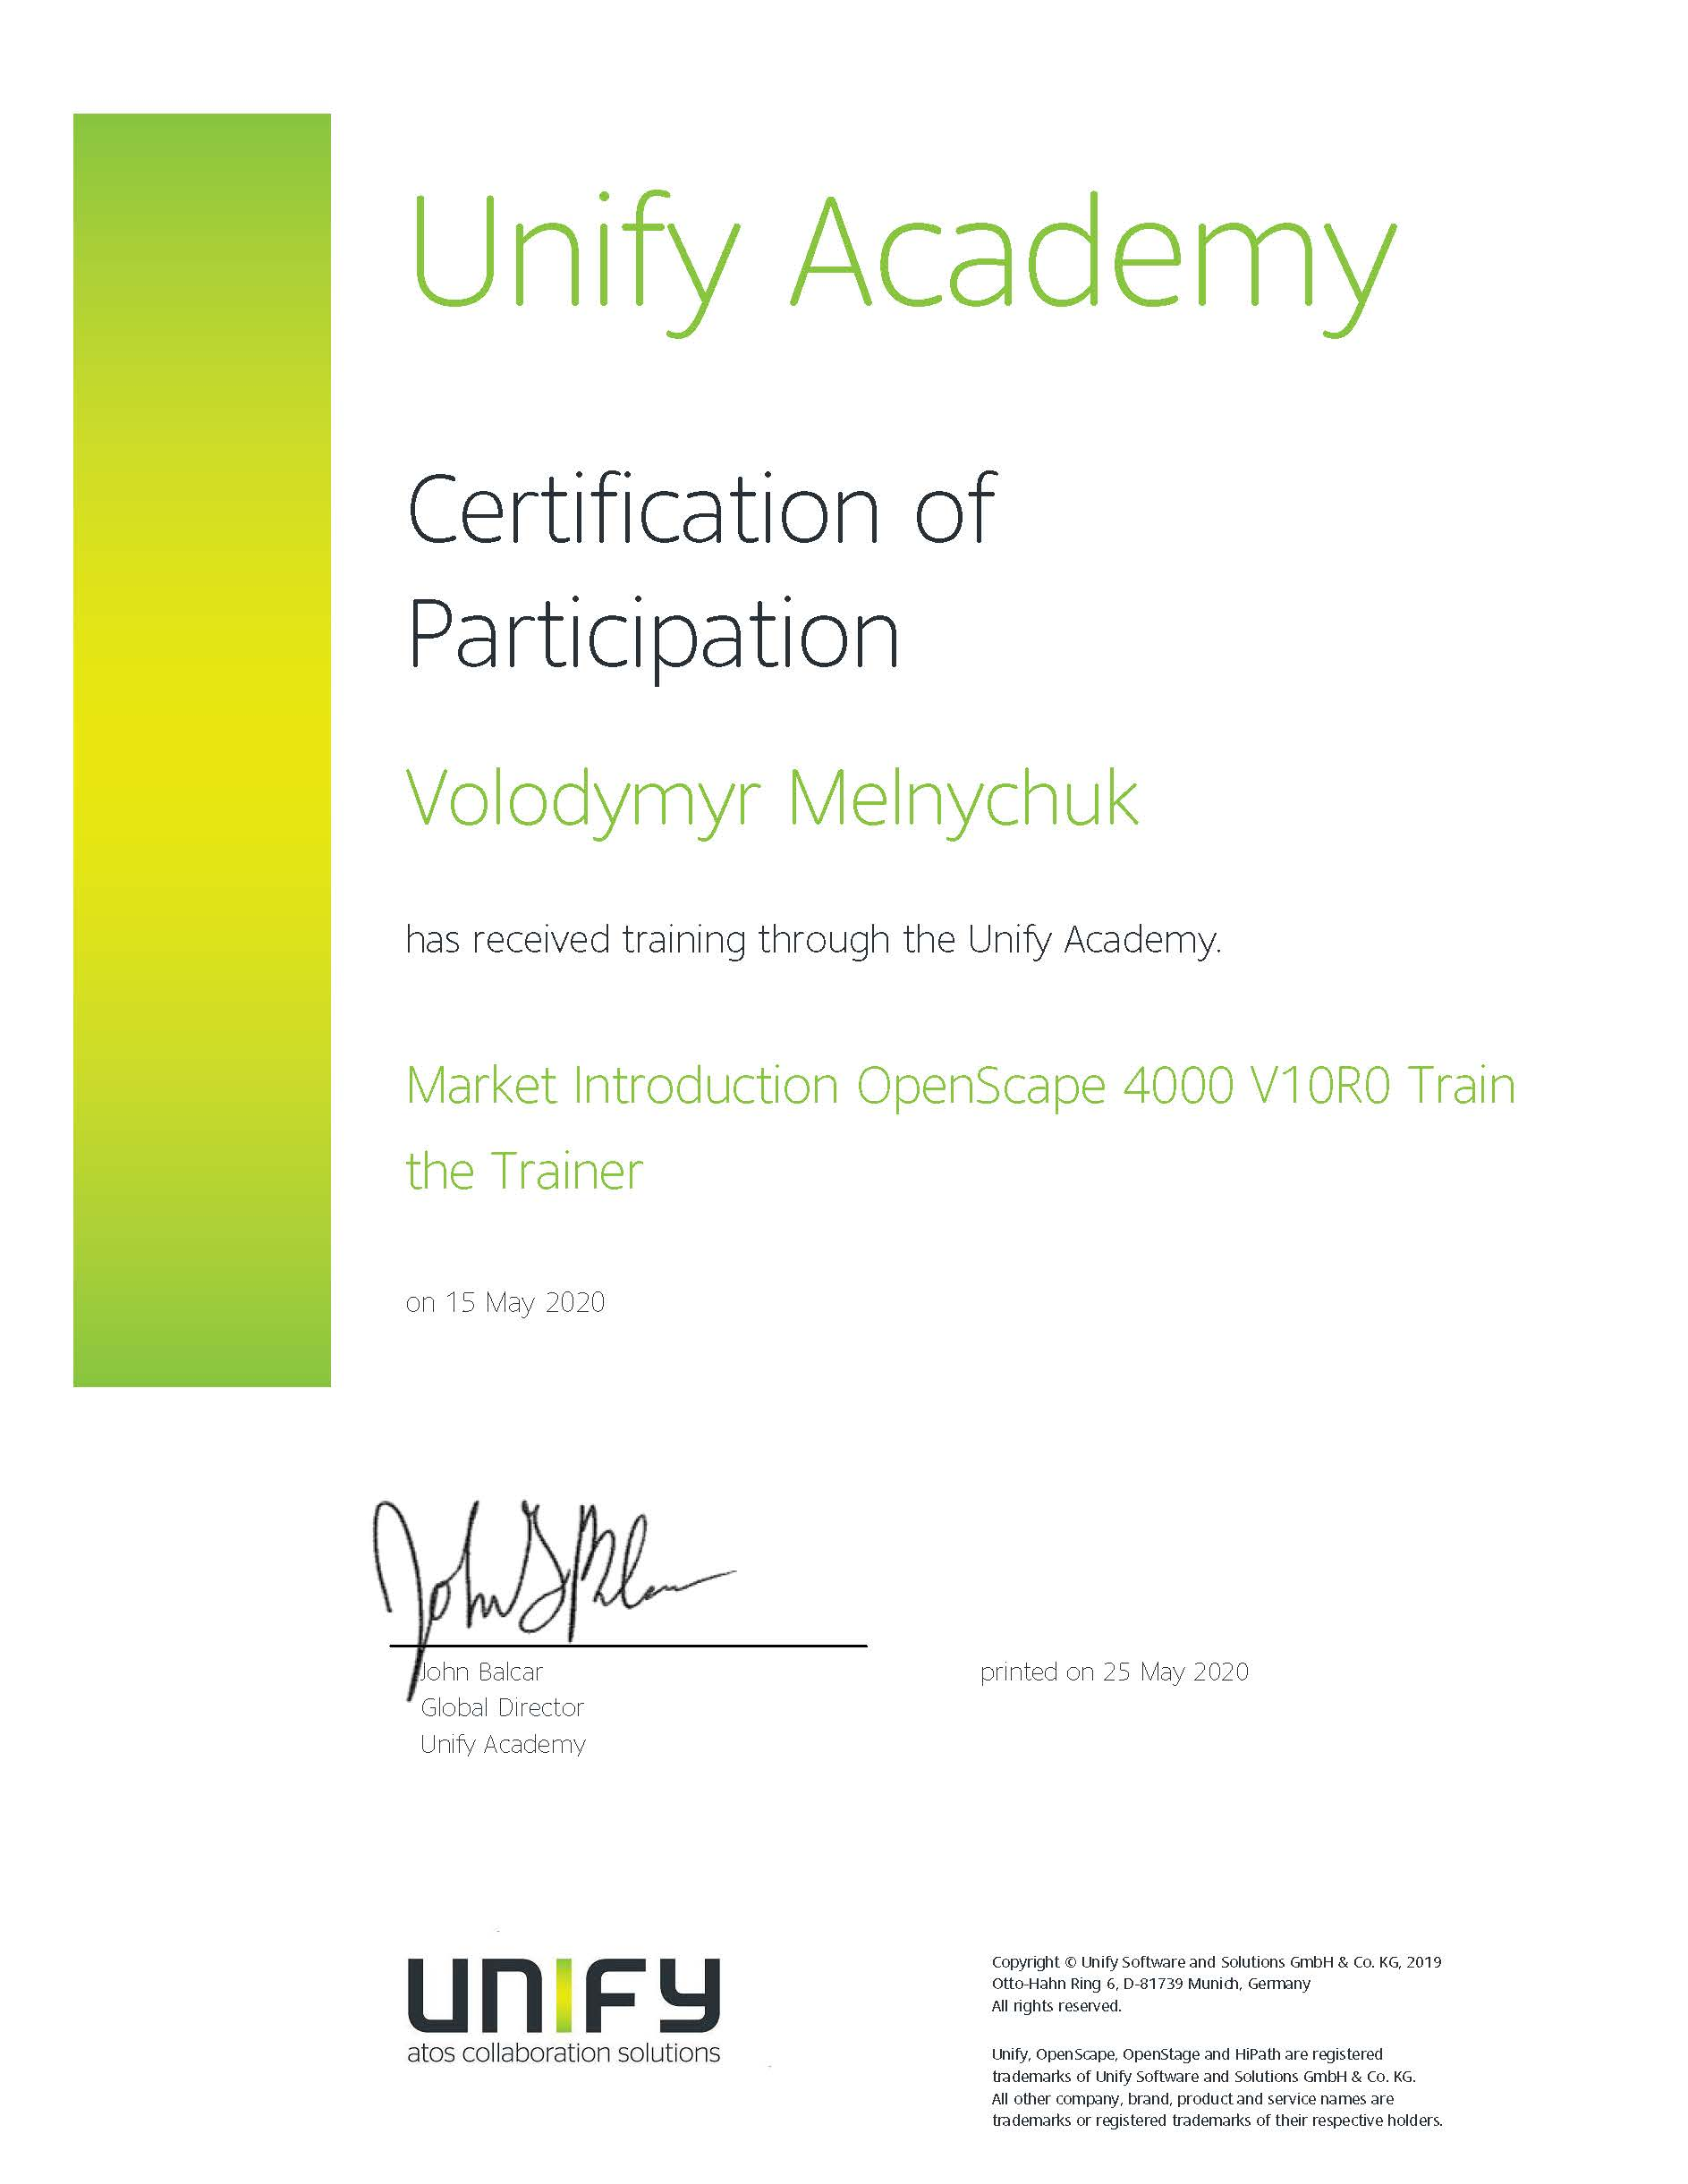 Unify Certification